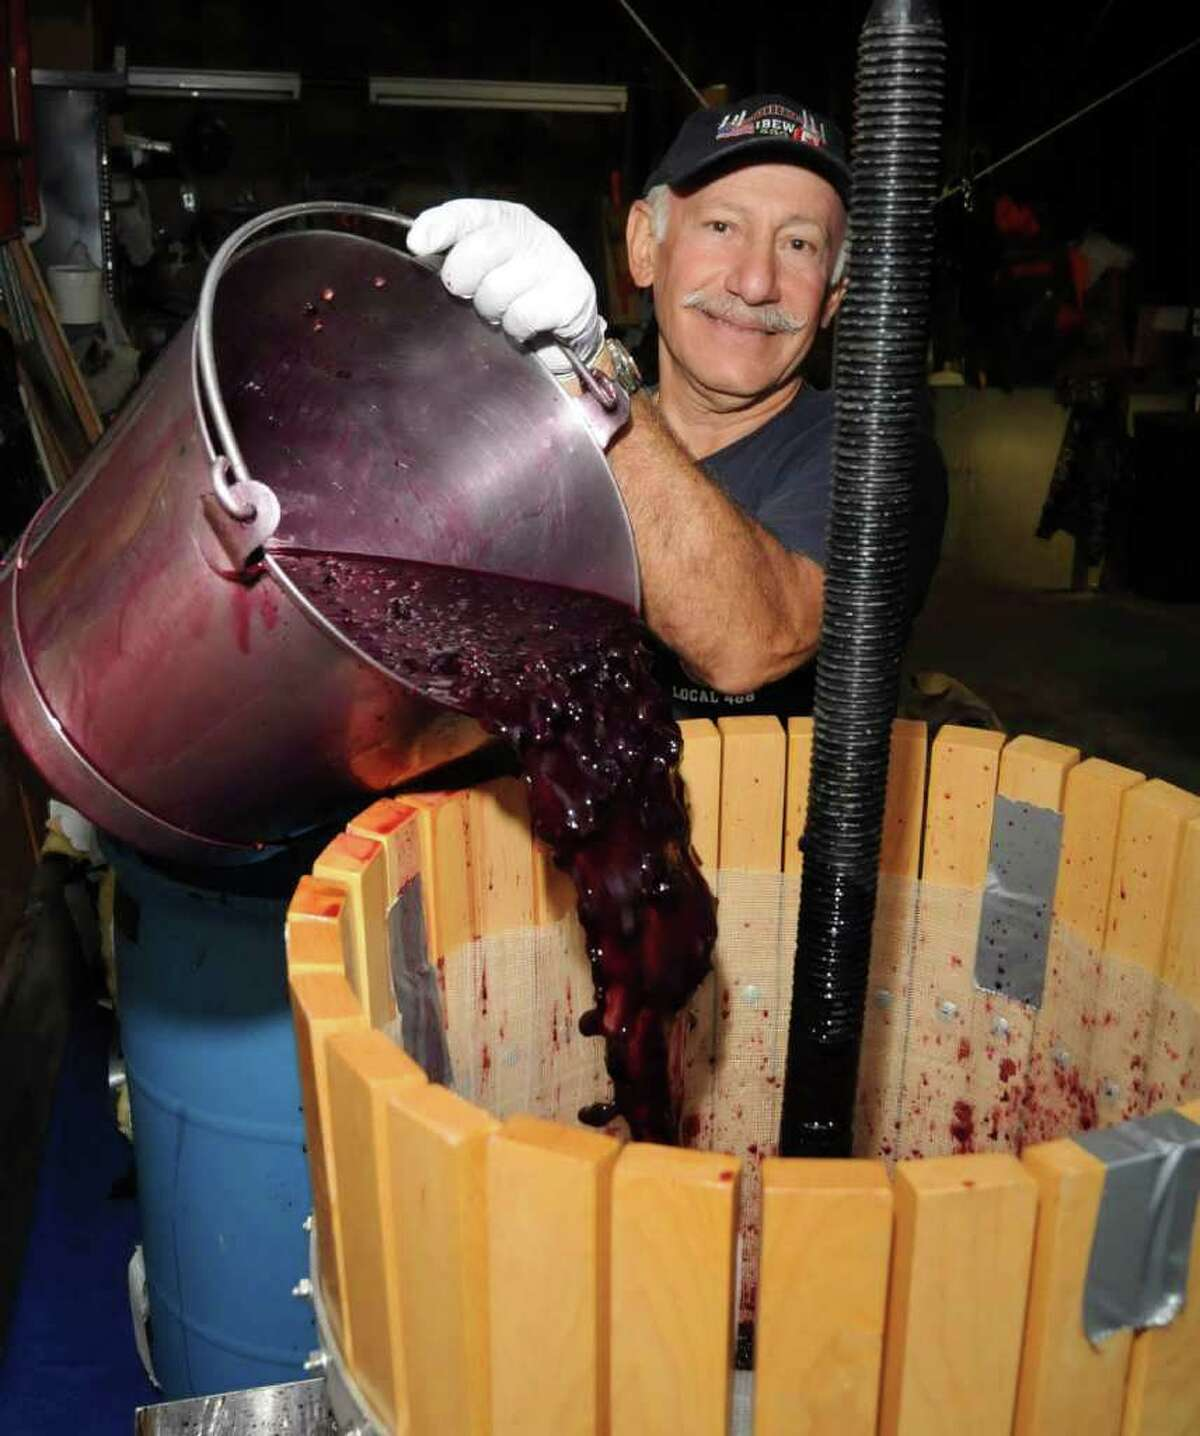 George Chaber, of Brookfield, loves to make his own wine each fall. Here he pours his crushed formented grapes into the wine press. Fri. Oct. 1, 2010.